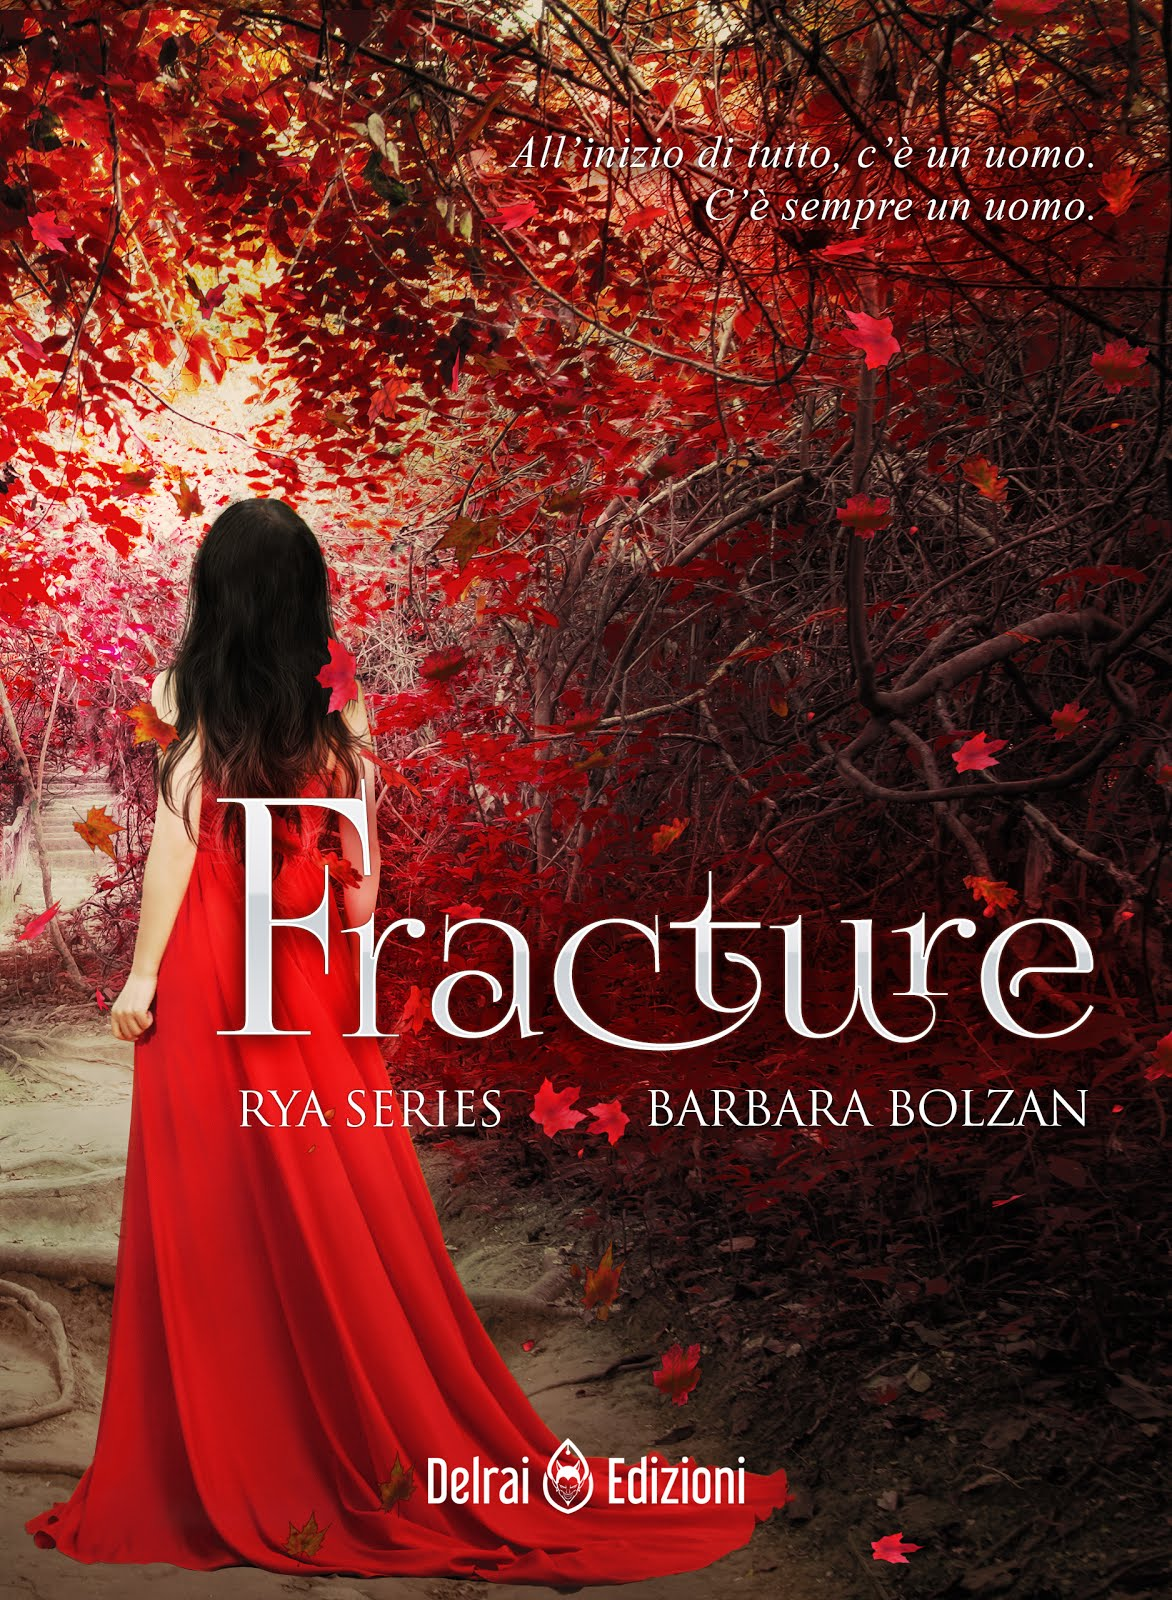 FRACTURE - Rya Series, vol.II